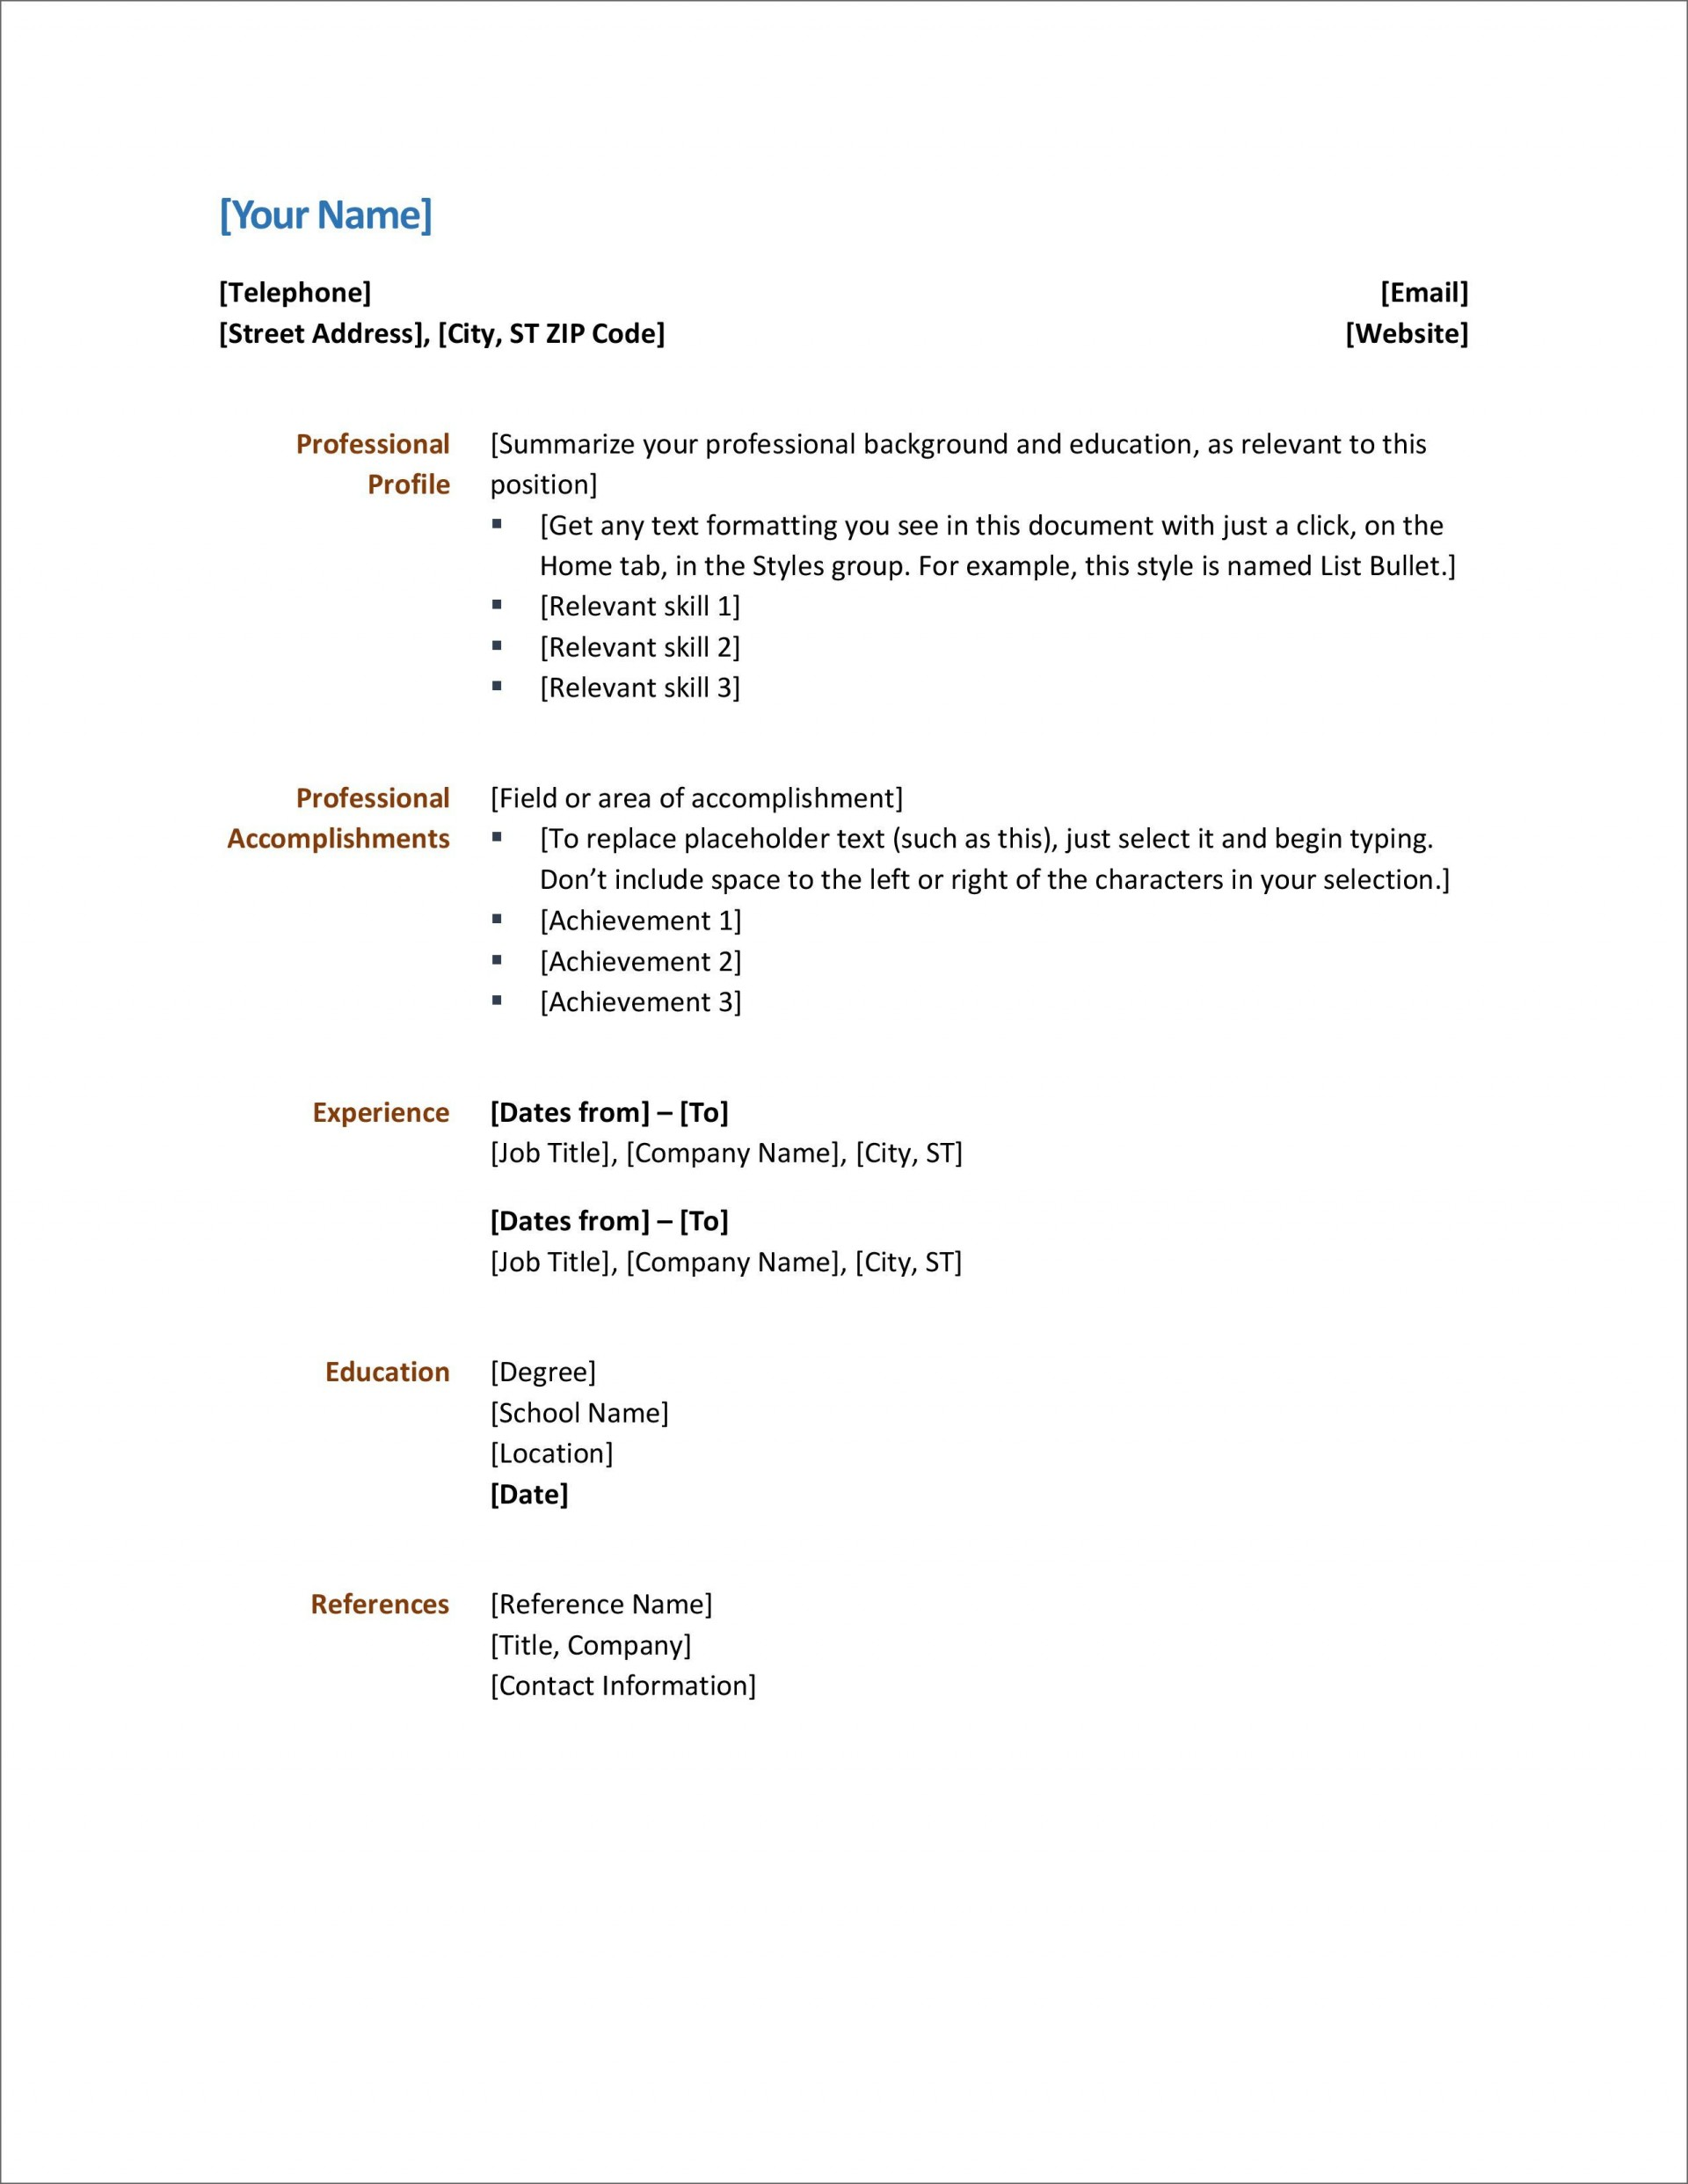 005 Rare Simple Resume Template Download In M Word Image 1920